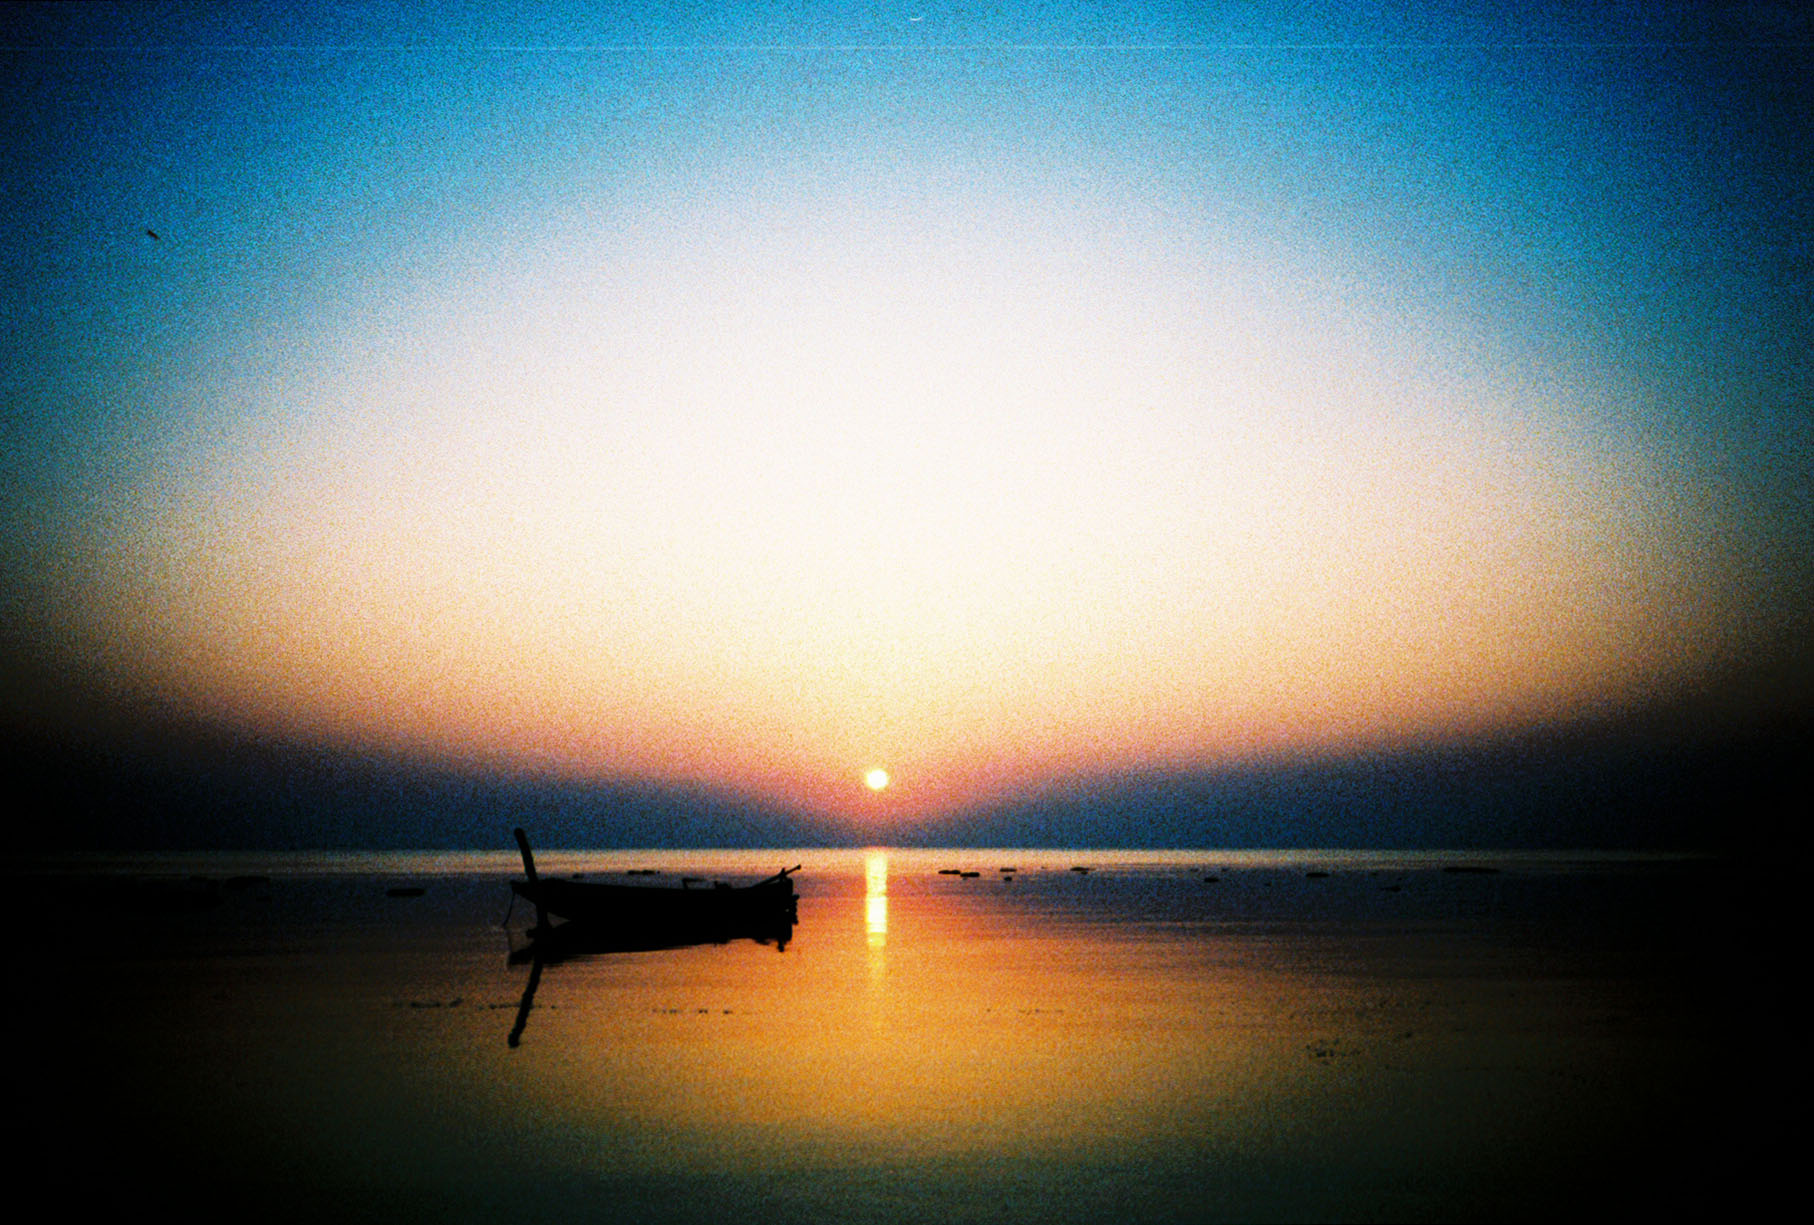 golden_havelock_island_boat_sunrise_india_march_2013